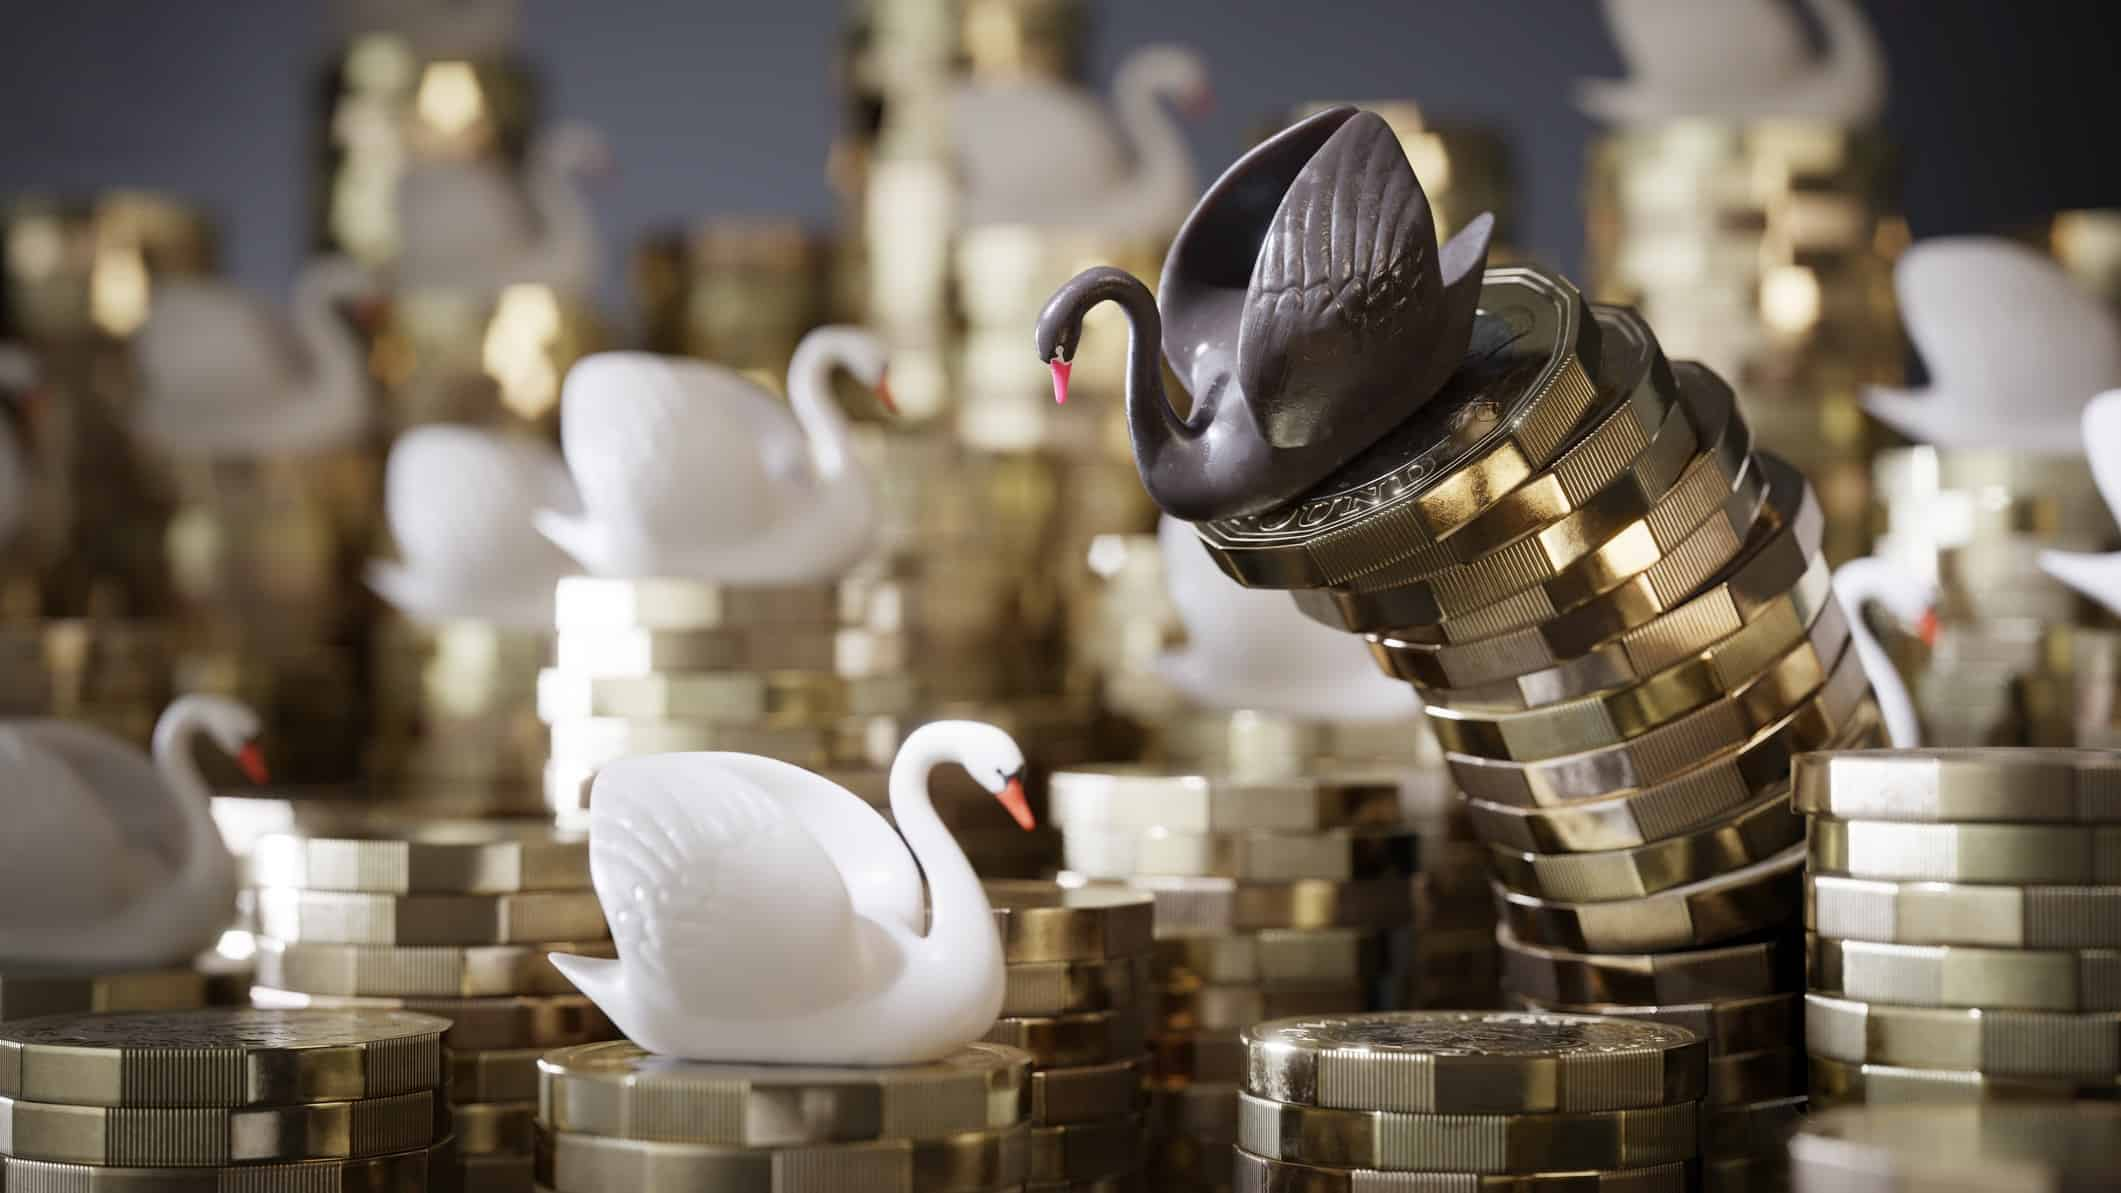 Black swan figurine on top of pile of coins started to topple over